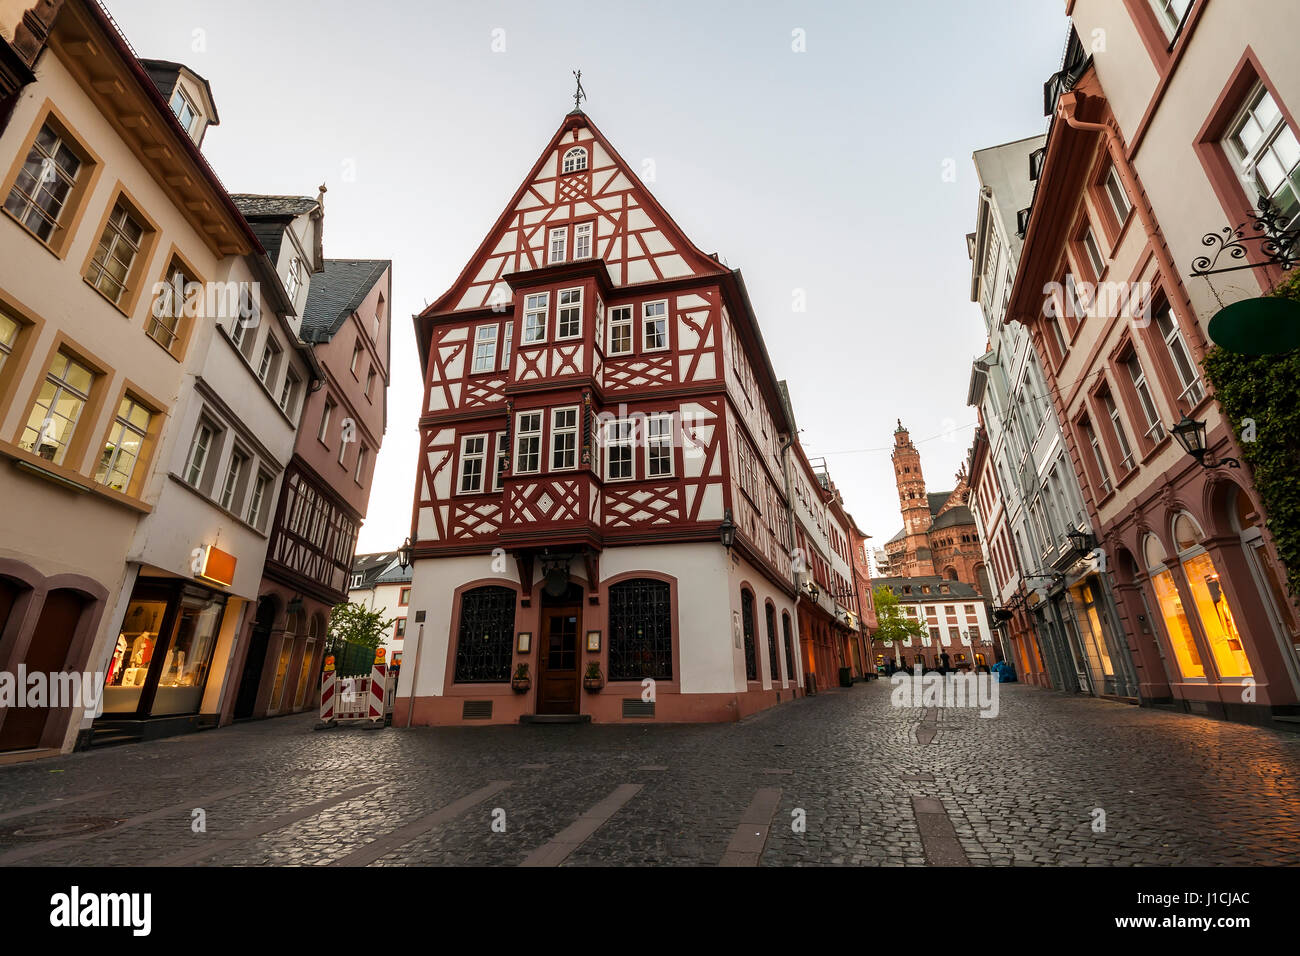 old architecture houses in the center of mainz city near frankfurt am stock photo 138575428 alamy. Black Bedroom Furniture Sets. Home Design Ideas